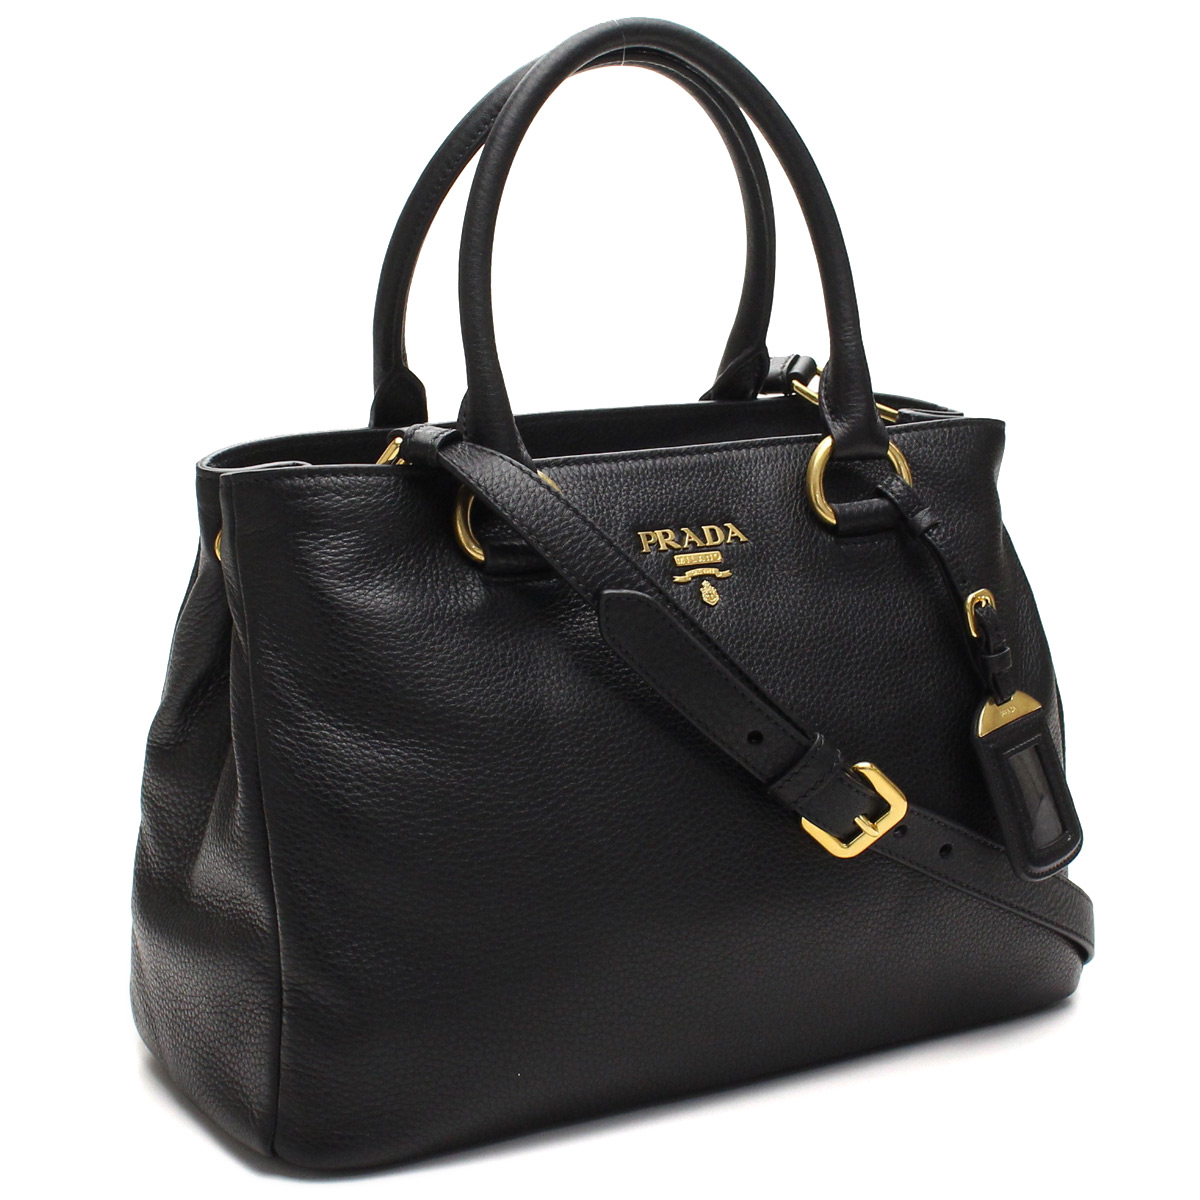 Bighit The total brand wholesale  Prada outlet PRADA (OUTLET) tote bag  1BA878-O-UWL-F0002 NERO black( taxfree send by EMS authentic A brand new  item ) ... 461ec739b4dd